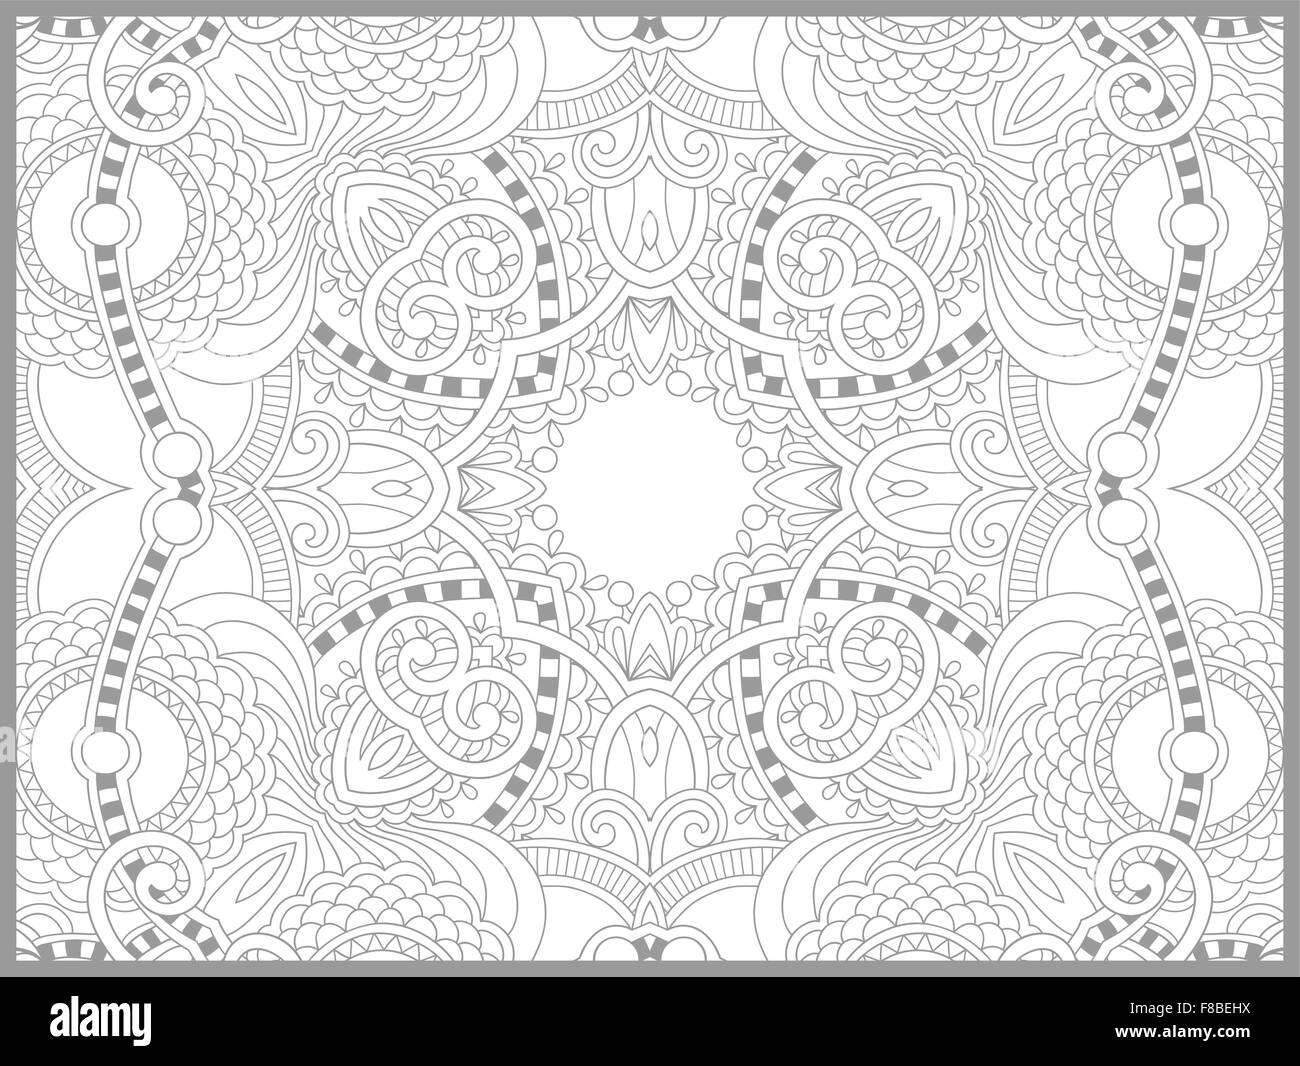 unique coloring book page for adults - flower paisley design Stock ...